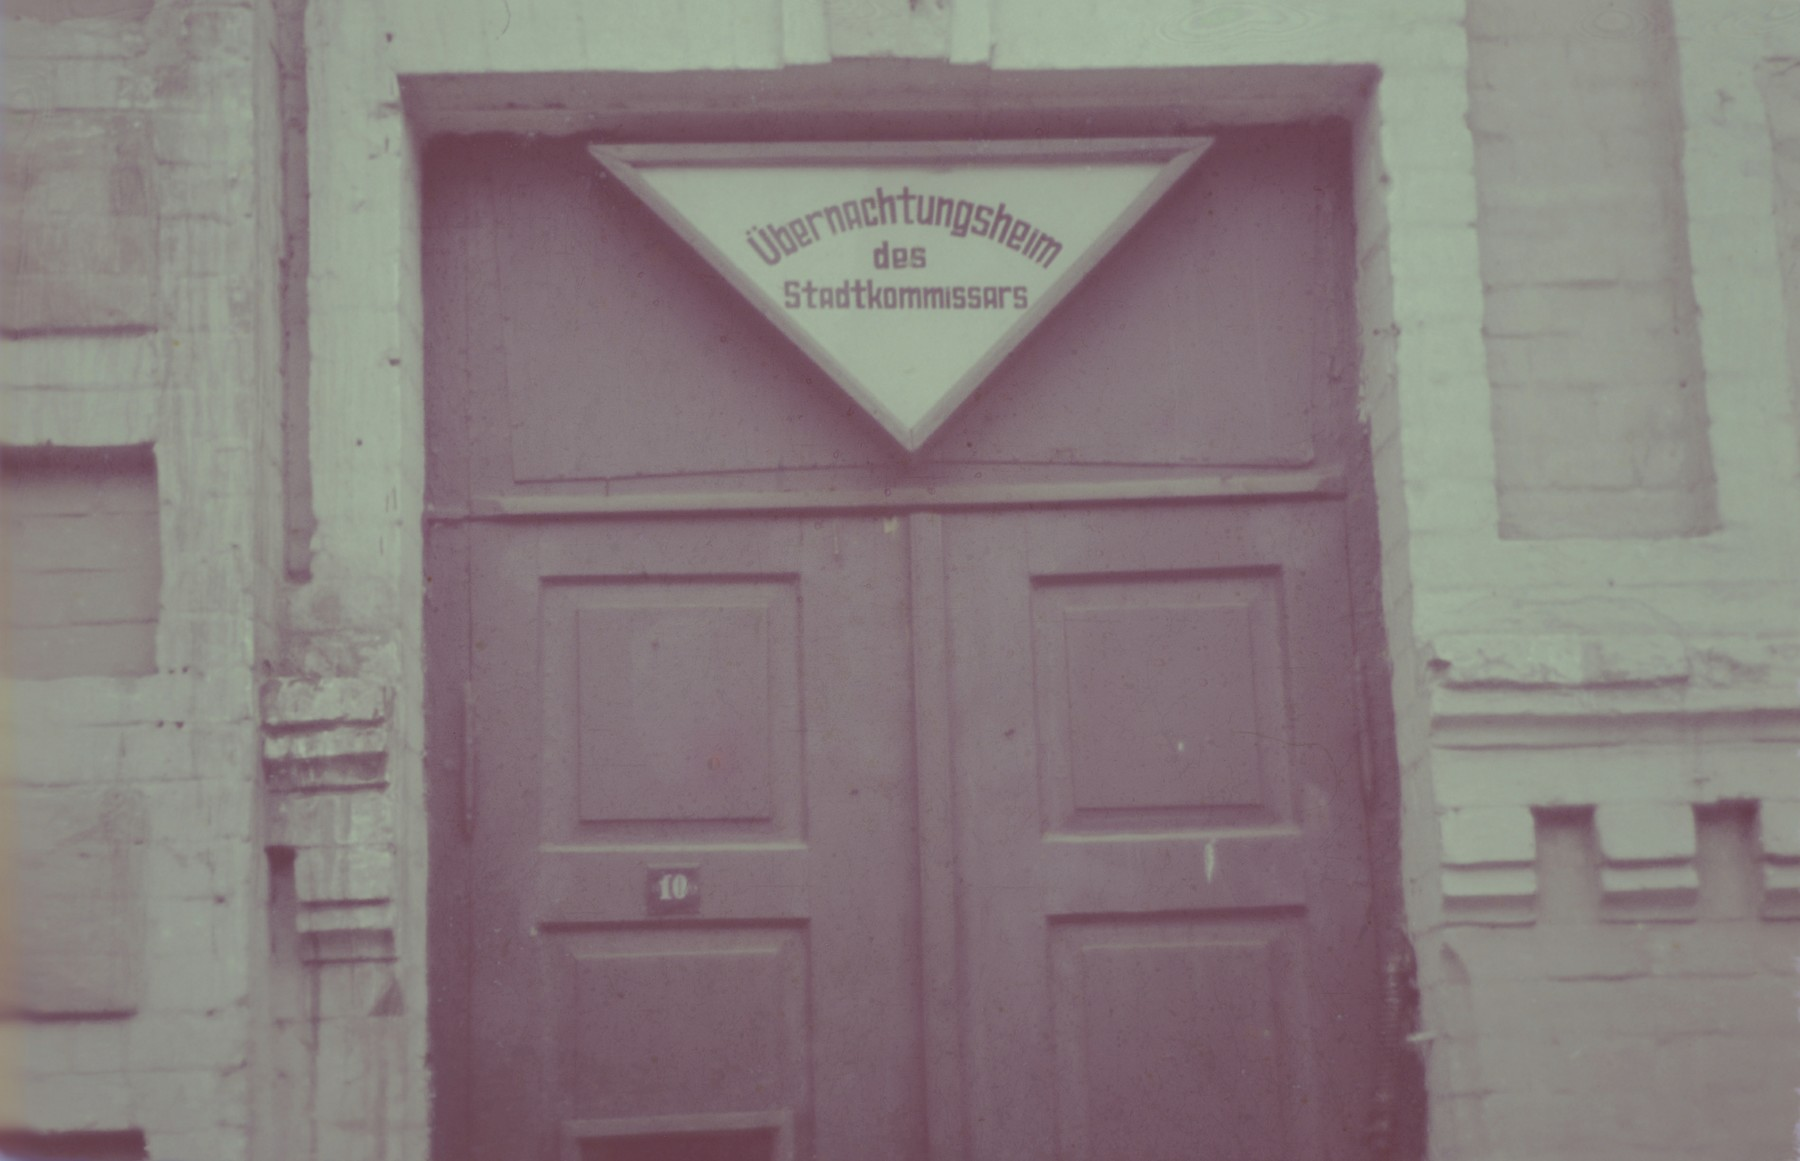 Entrance to the offices of the Stadtkommissar in the Lodz ghetto.